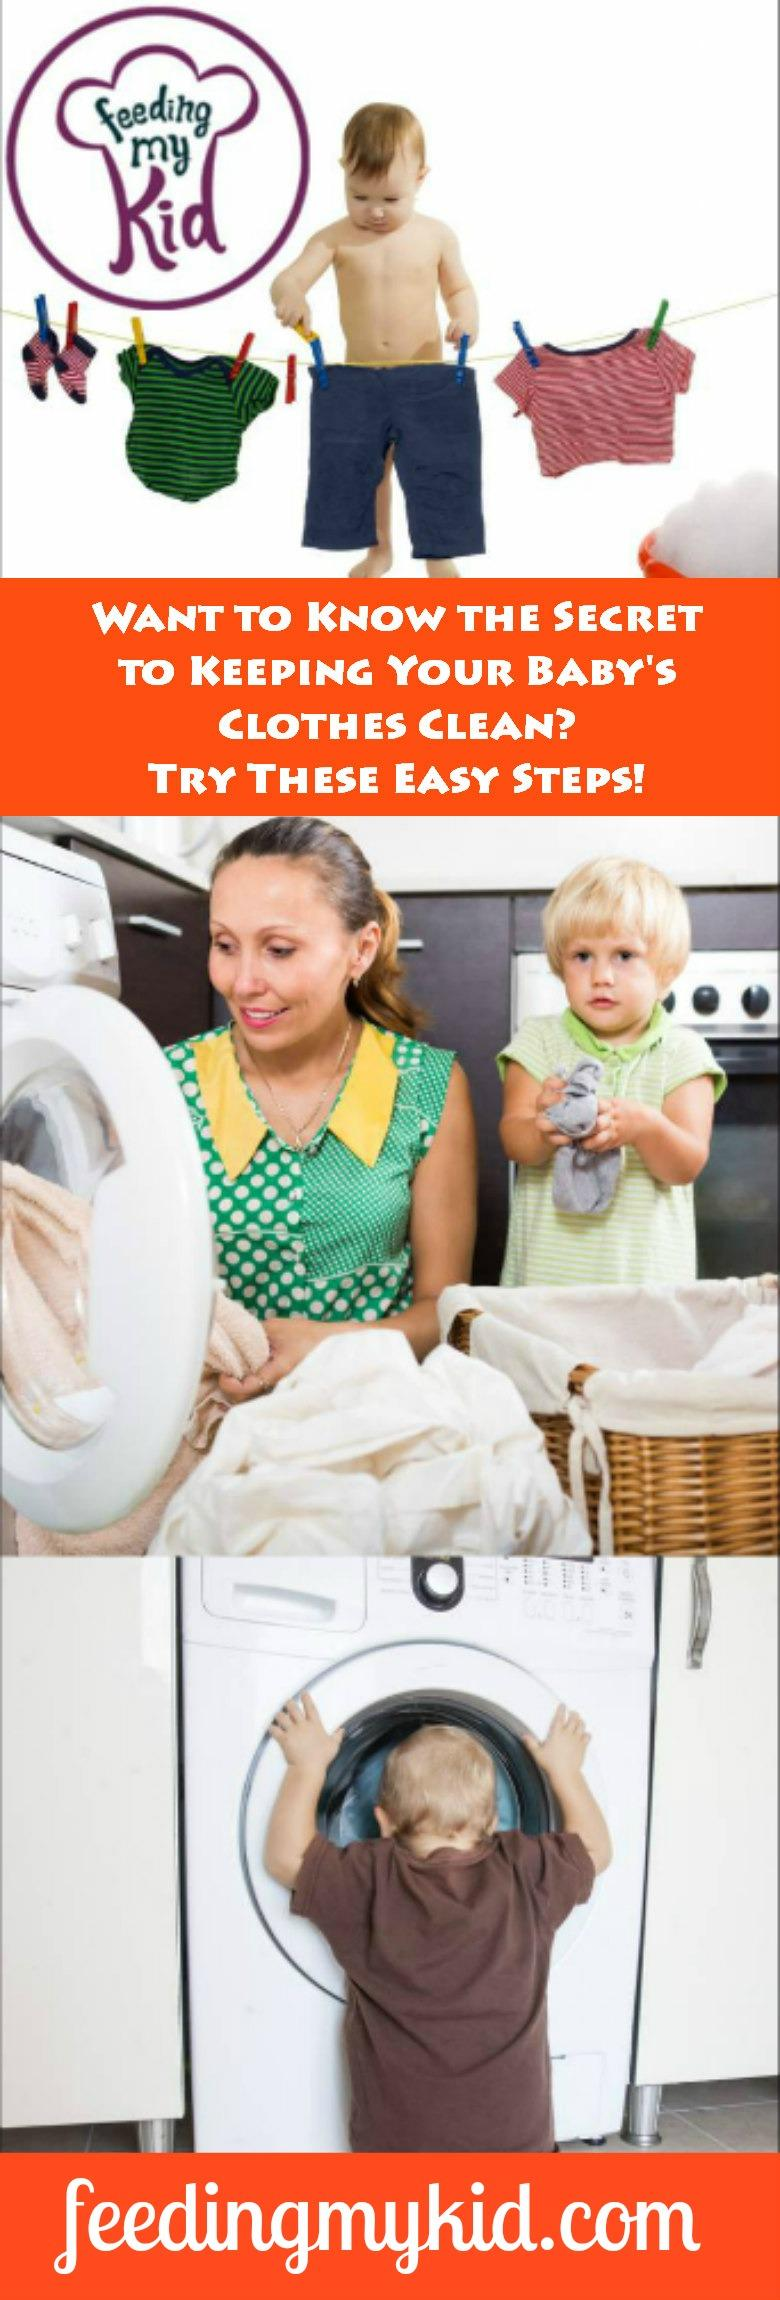 This is a must pin! In these videos you'll learn everything you need to know about washing baby clothes! Feeding My Kid is a website for parents, filled with all the information you need about how to raise your kids, from healthy tips to nutritious recipes. #videos #tips #hacks #washingbabyclothes